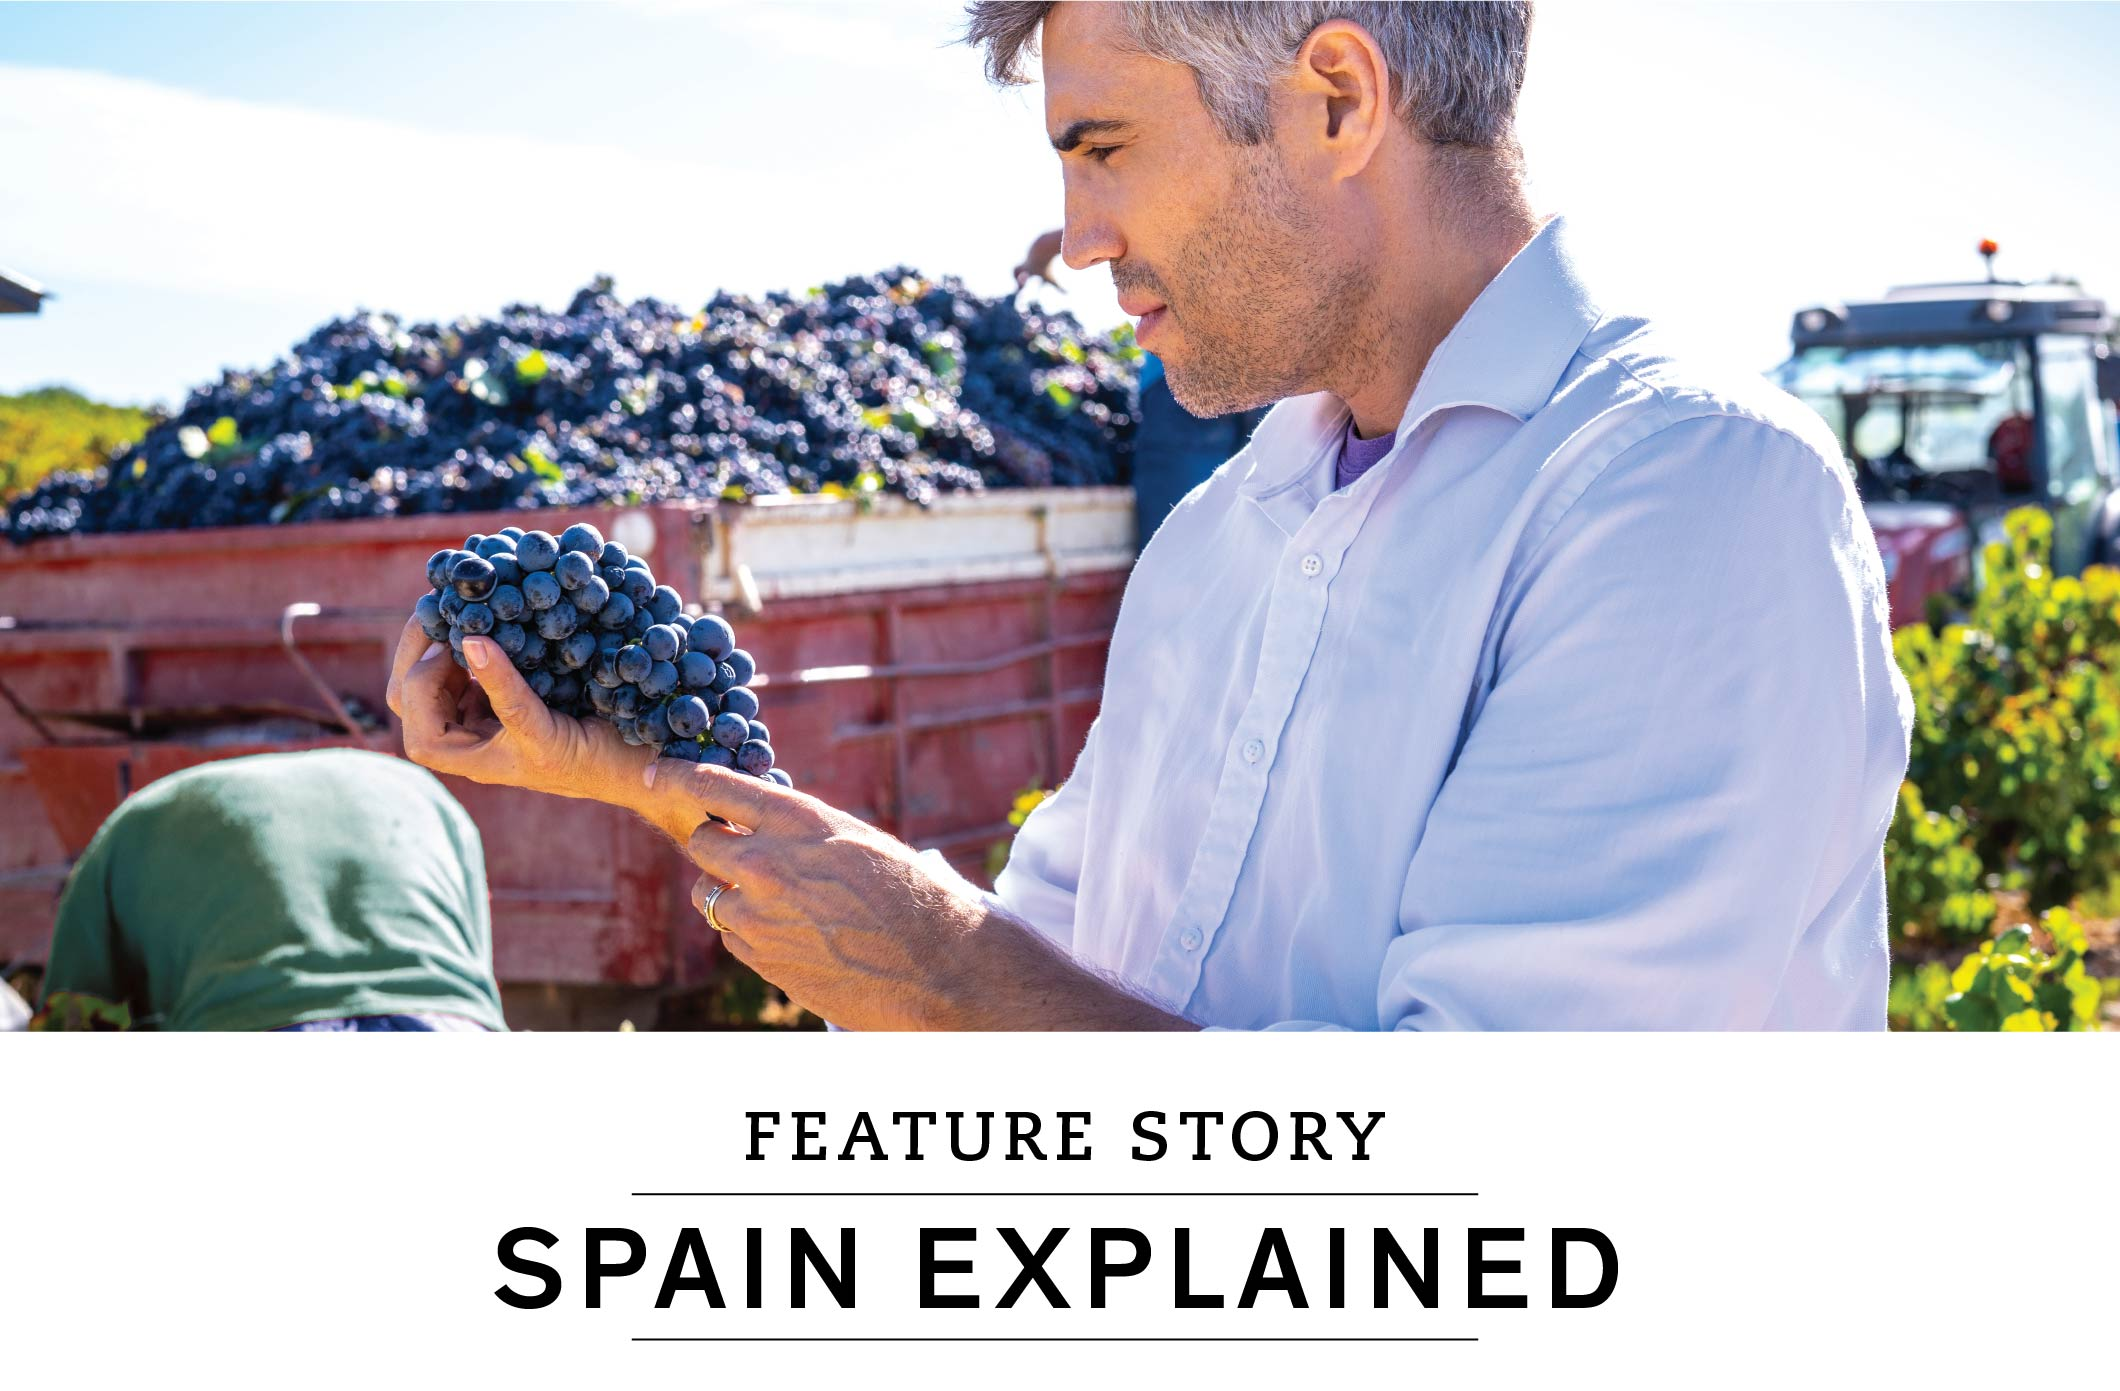 FEATURE STORY: Spain Explained